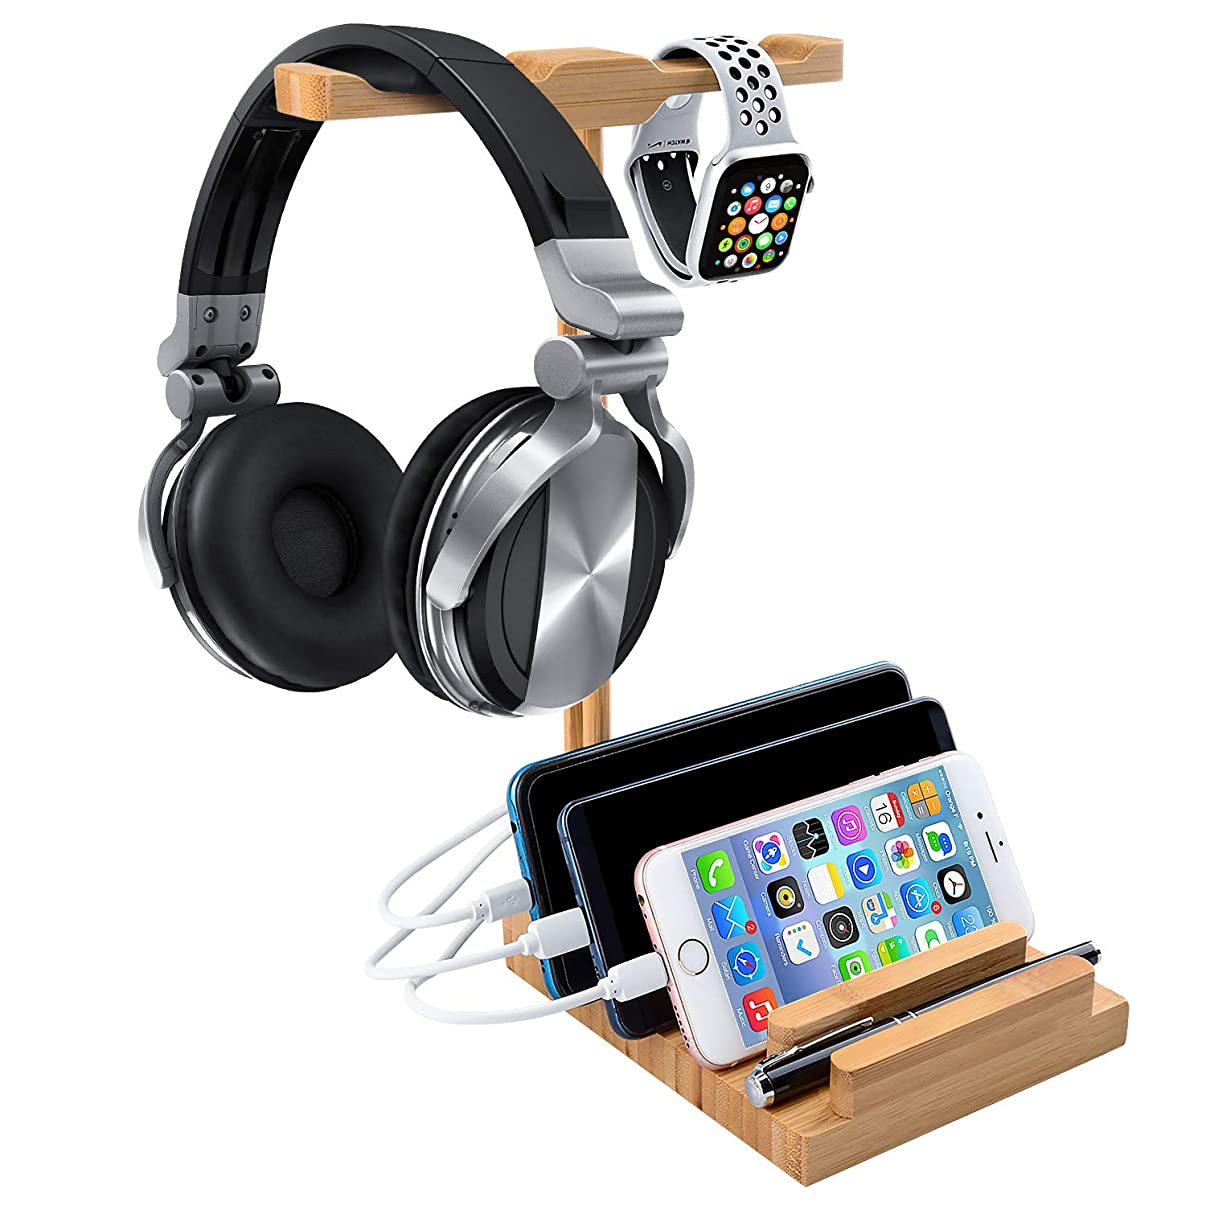 Headphone Stand with USB Charger, World Backyard Bamboo Charging Station with Dual Hanger for Desktop Gaming Headset or Apple Watch. 3 Pcs Different Version Charging Cable Included.